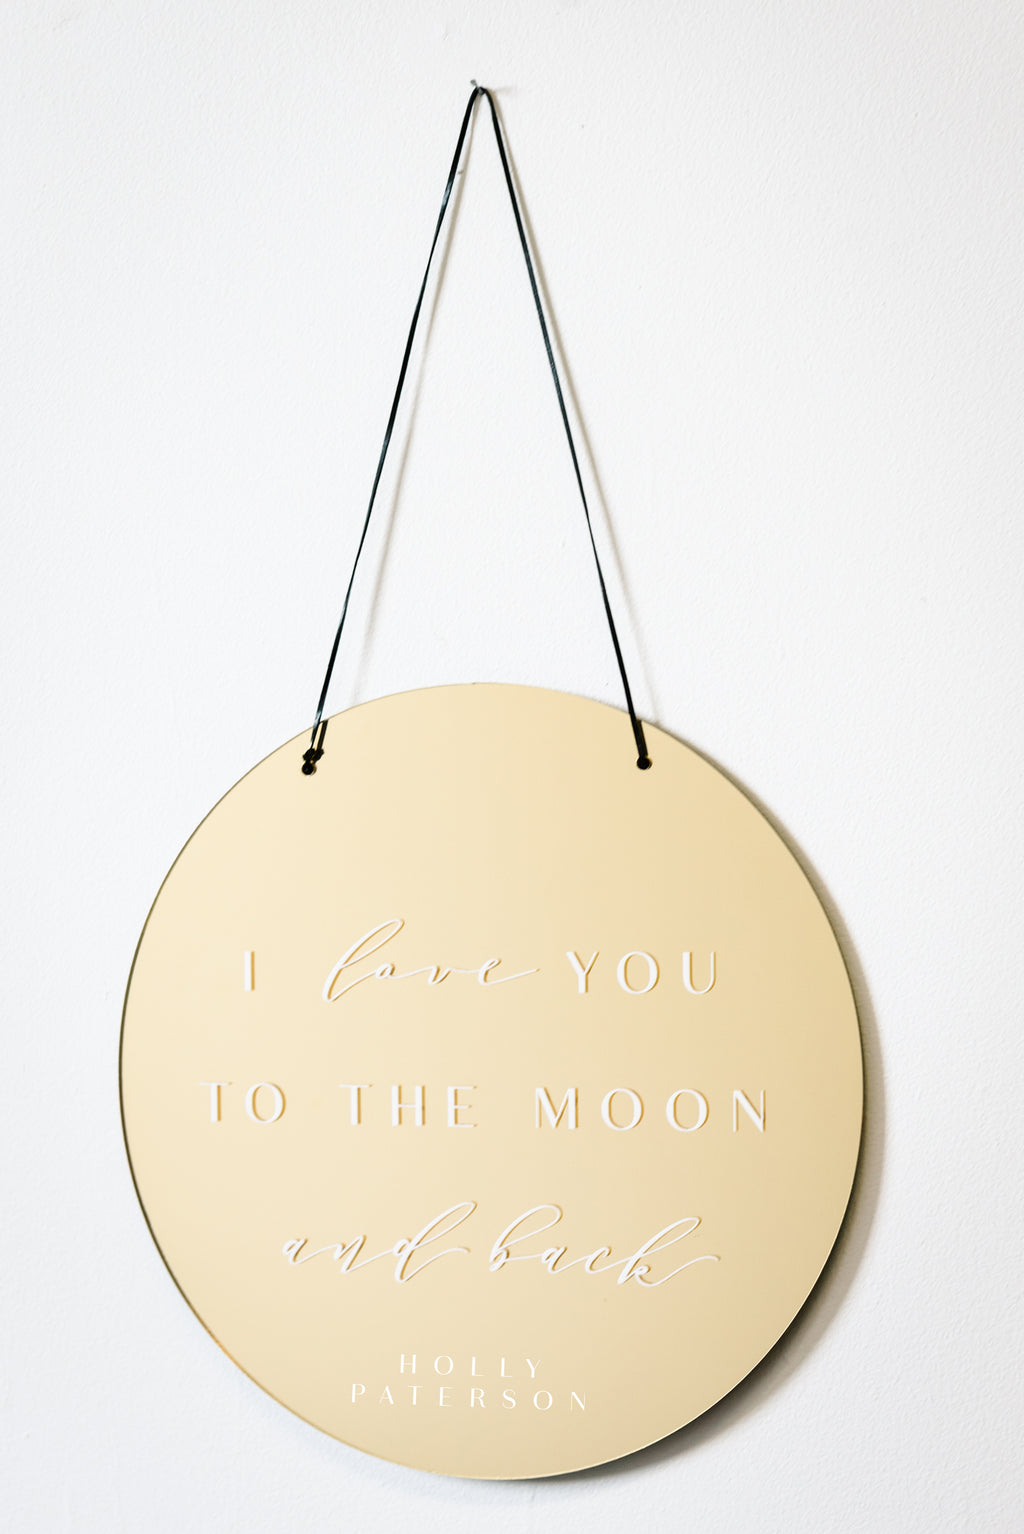 To the Moon and back Mirror Acrylic Plaque